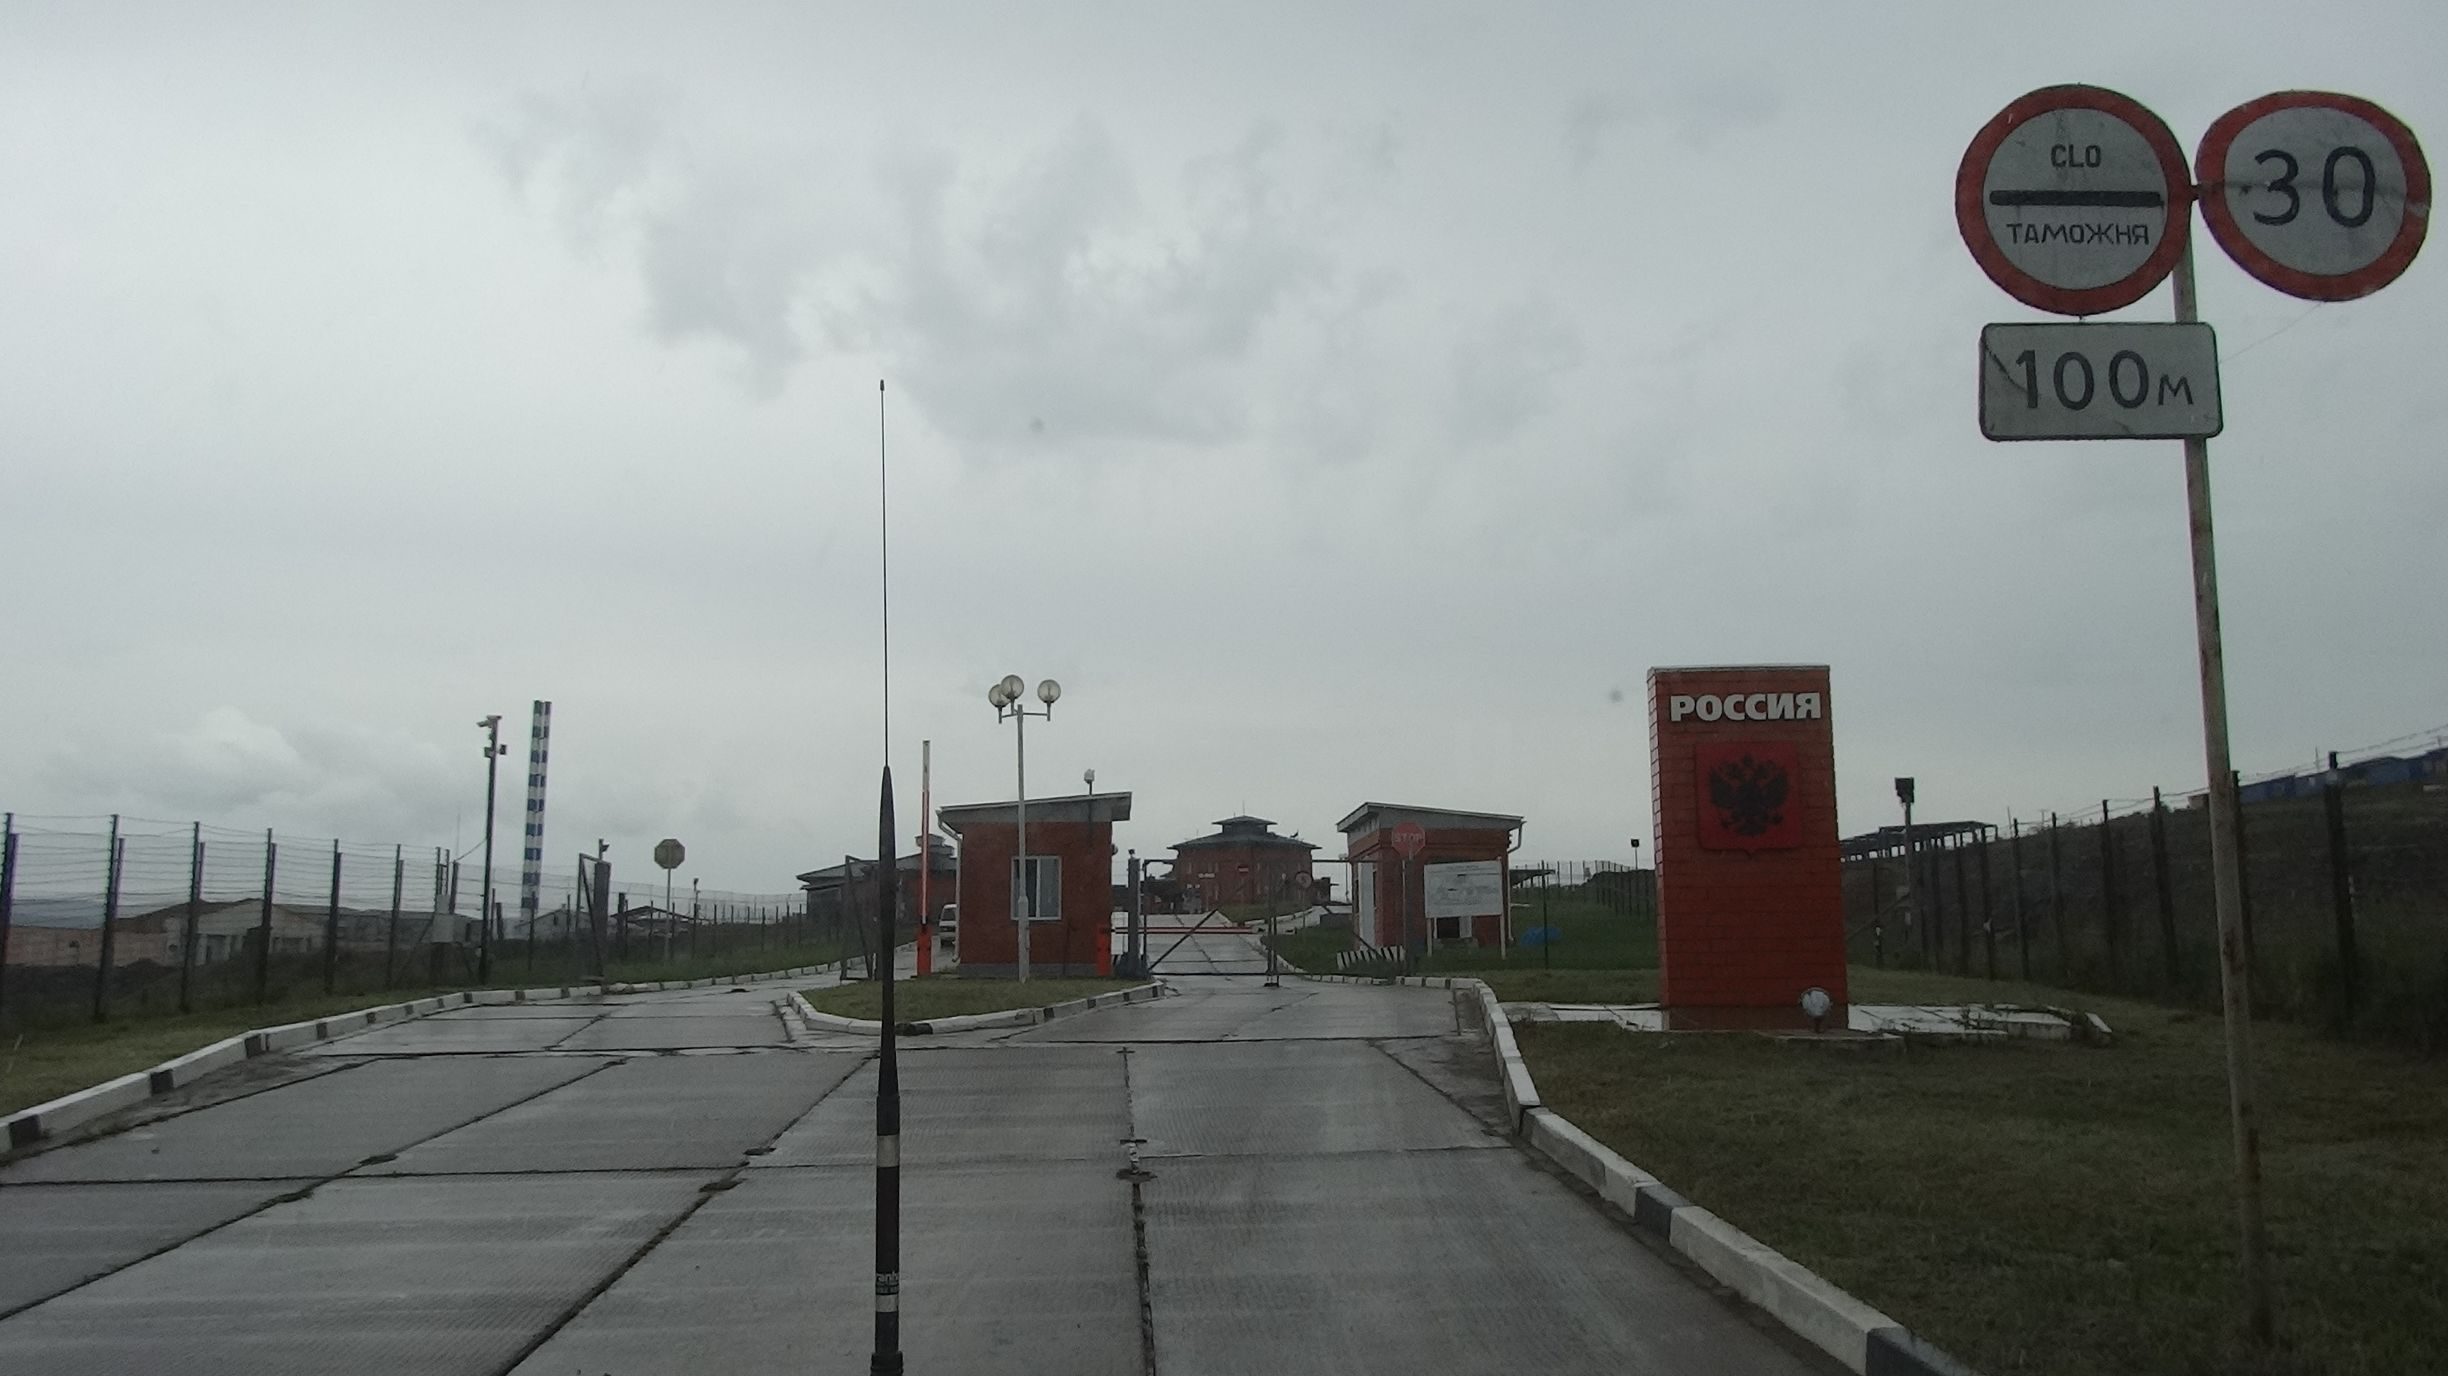 a short section of no-man's land, the view of the Russian border post